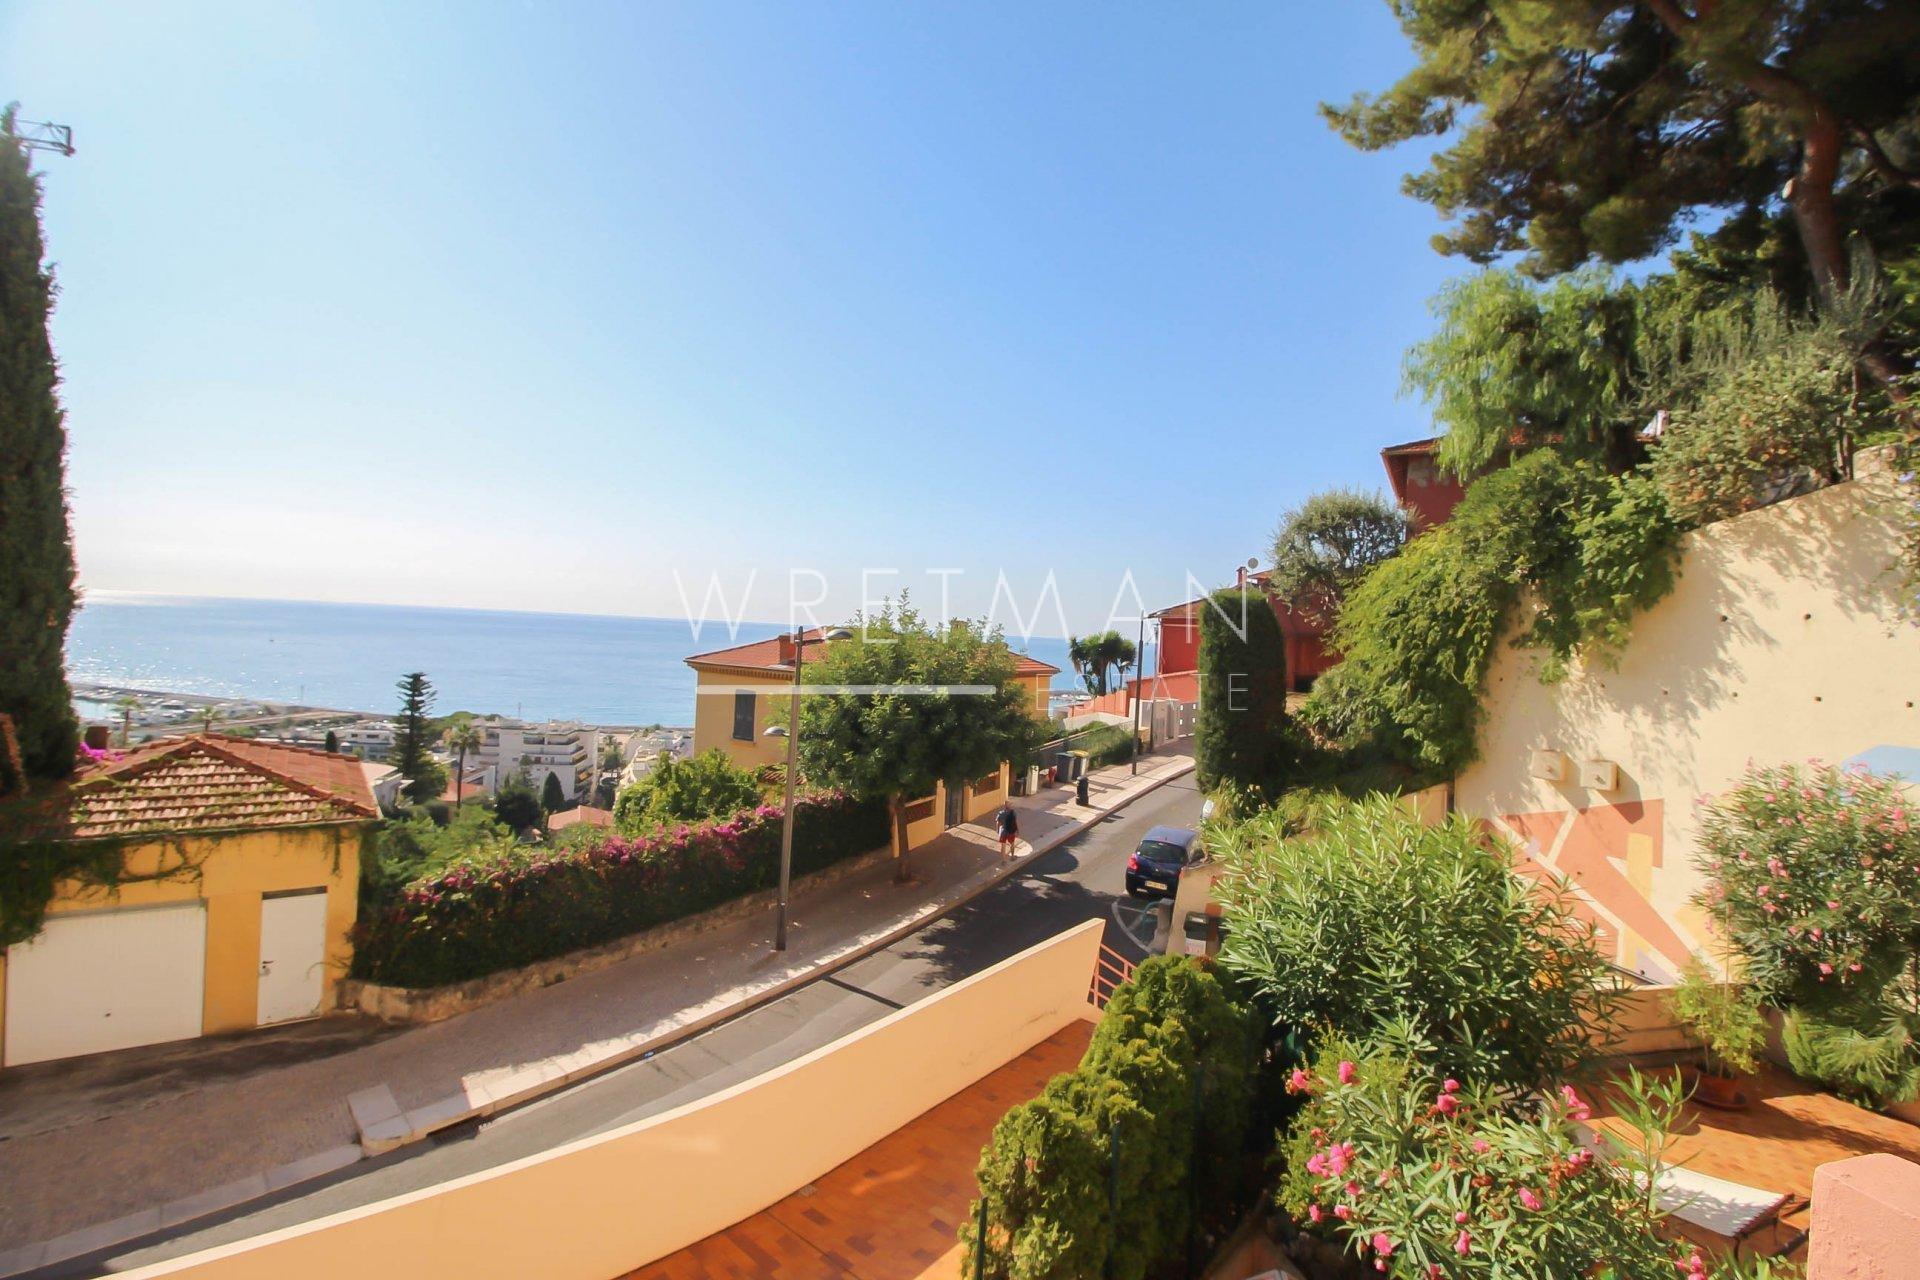 One bedroom apartment with panoramic views - Menton Garavan